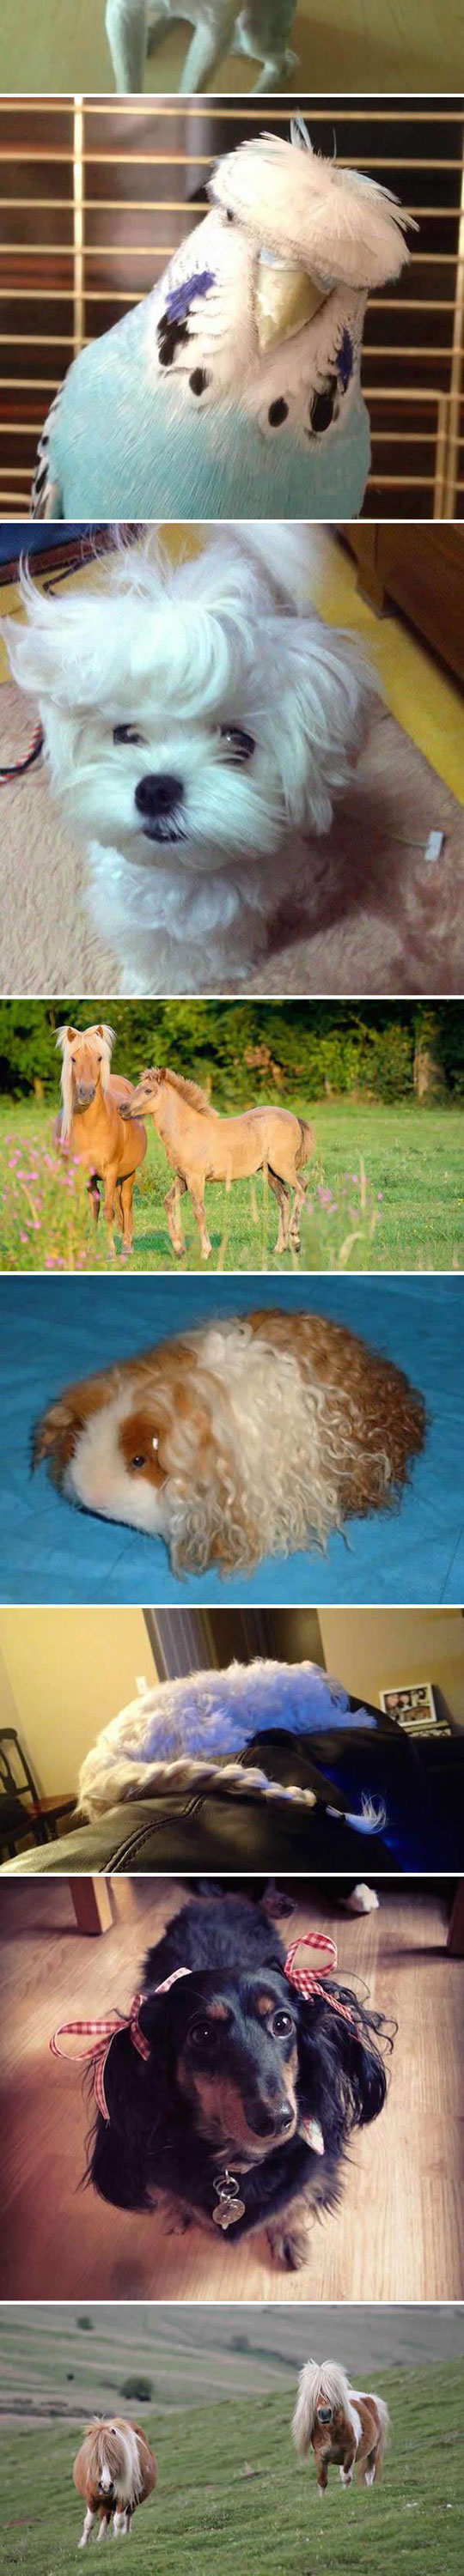 funny-bad-hair-day-pets